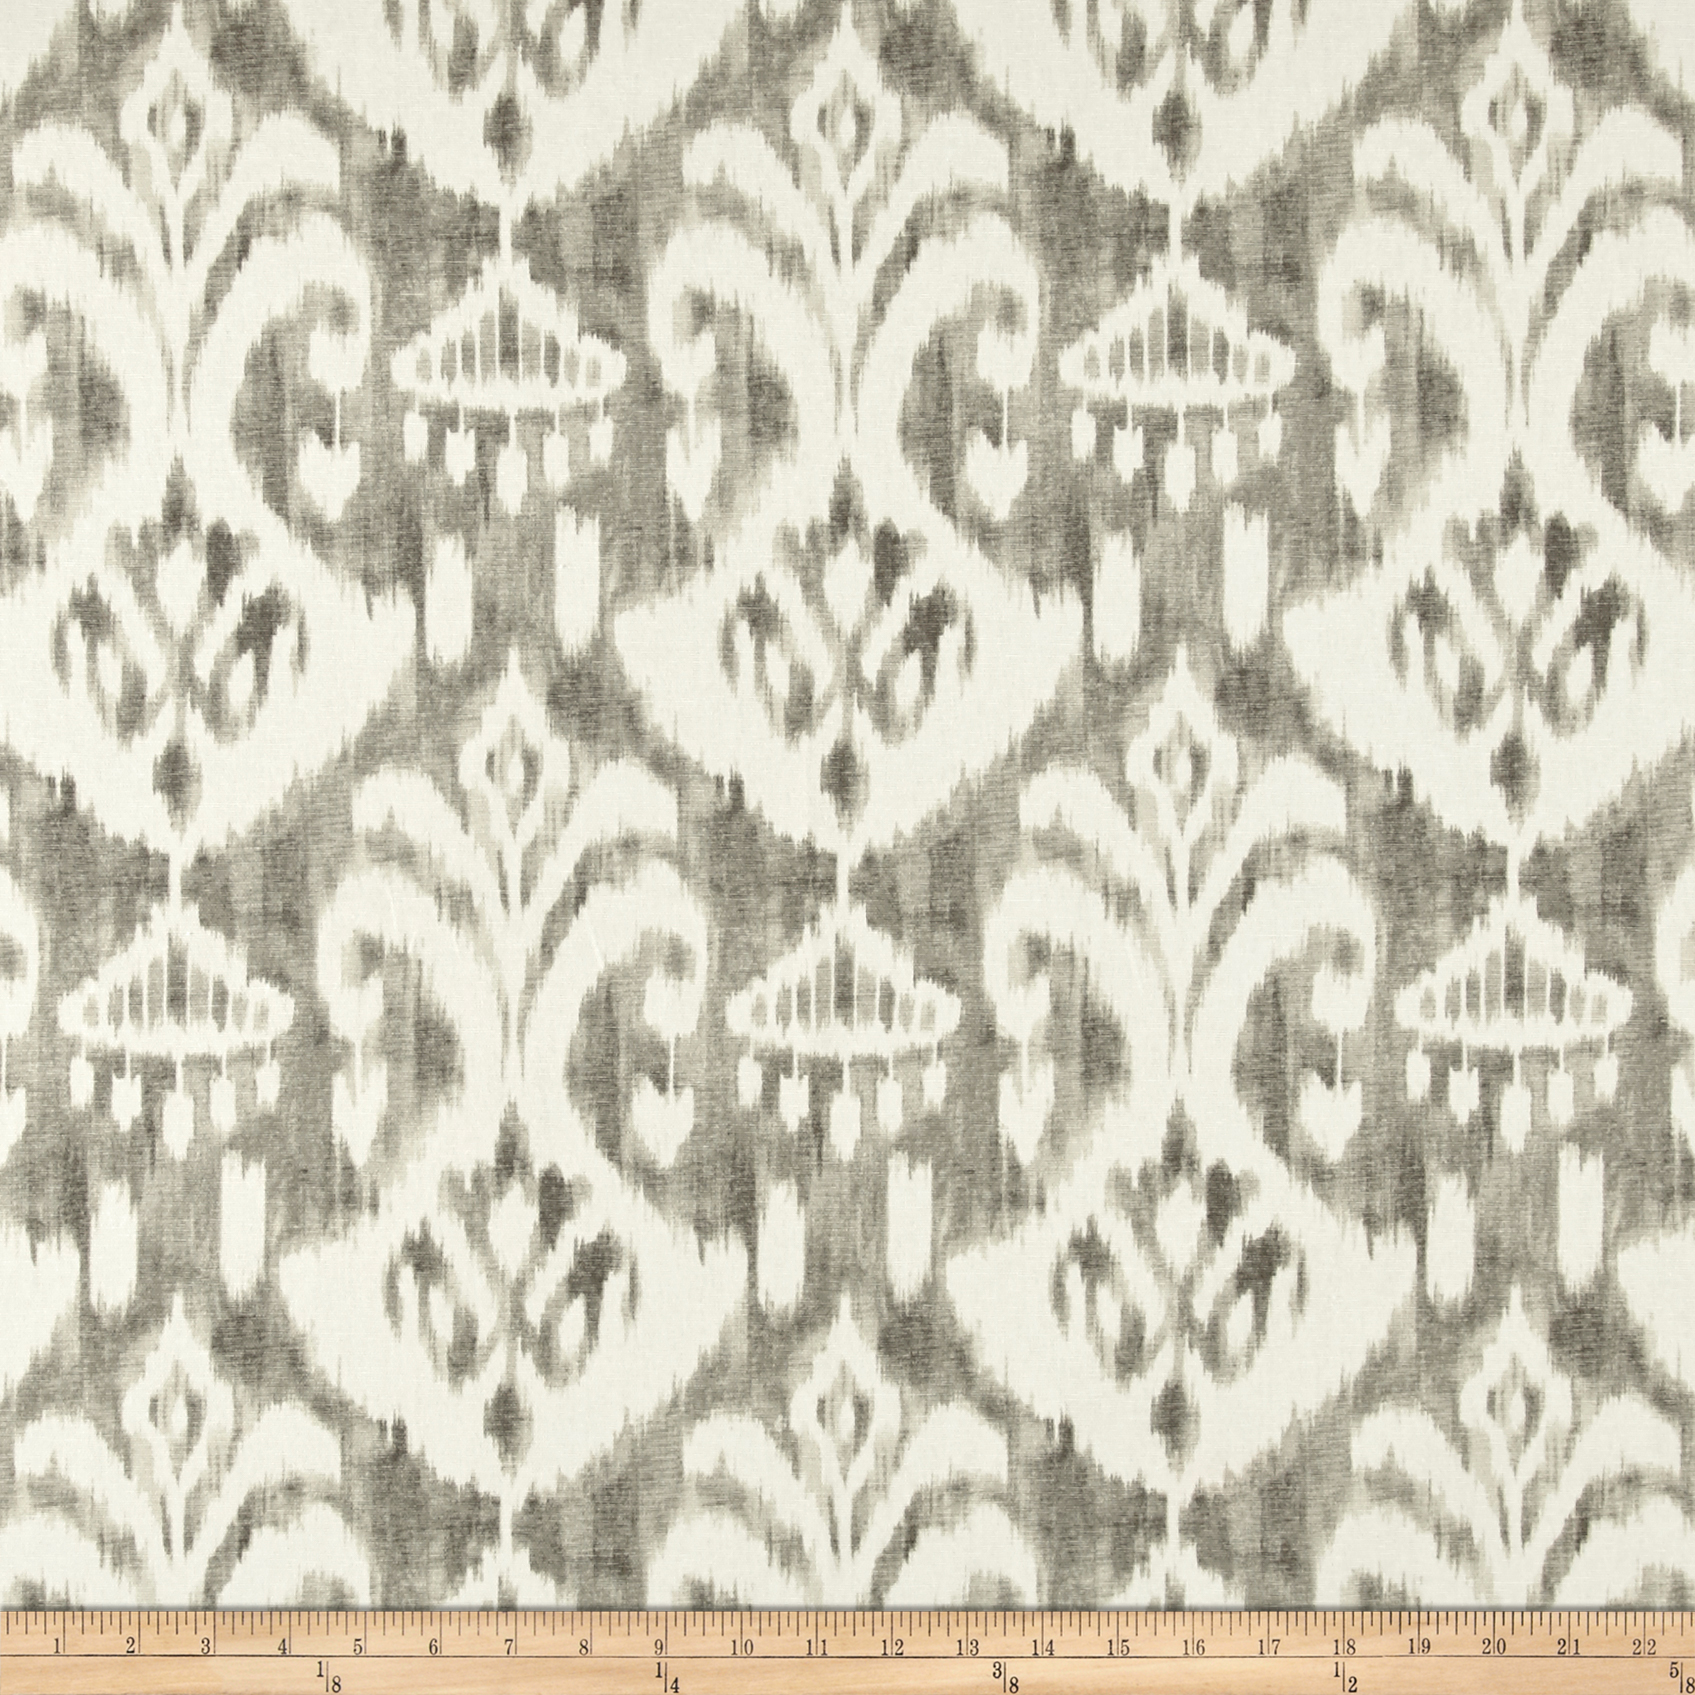 Swavelle/Mill Creek Voisey Driftwood Fabric by Swavelle Mill Creek in USA